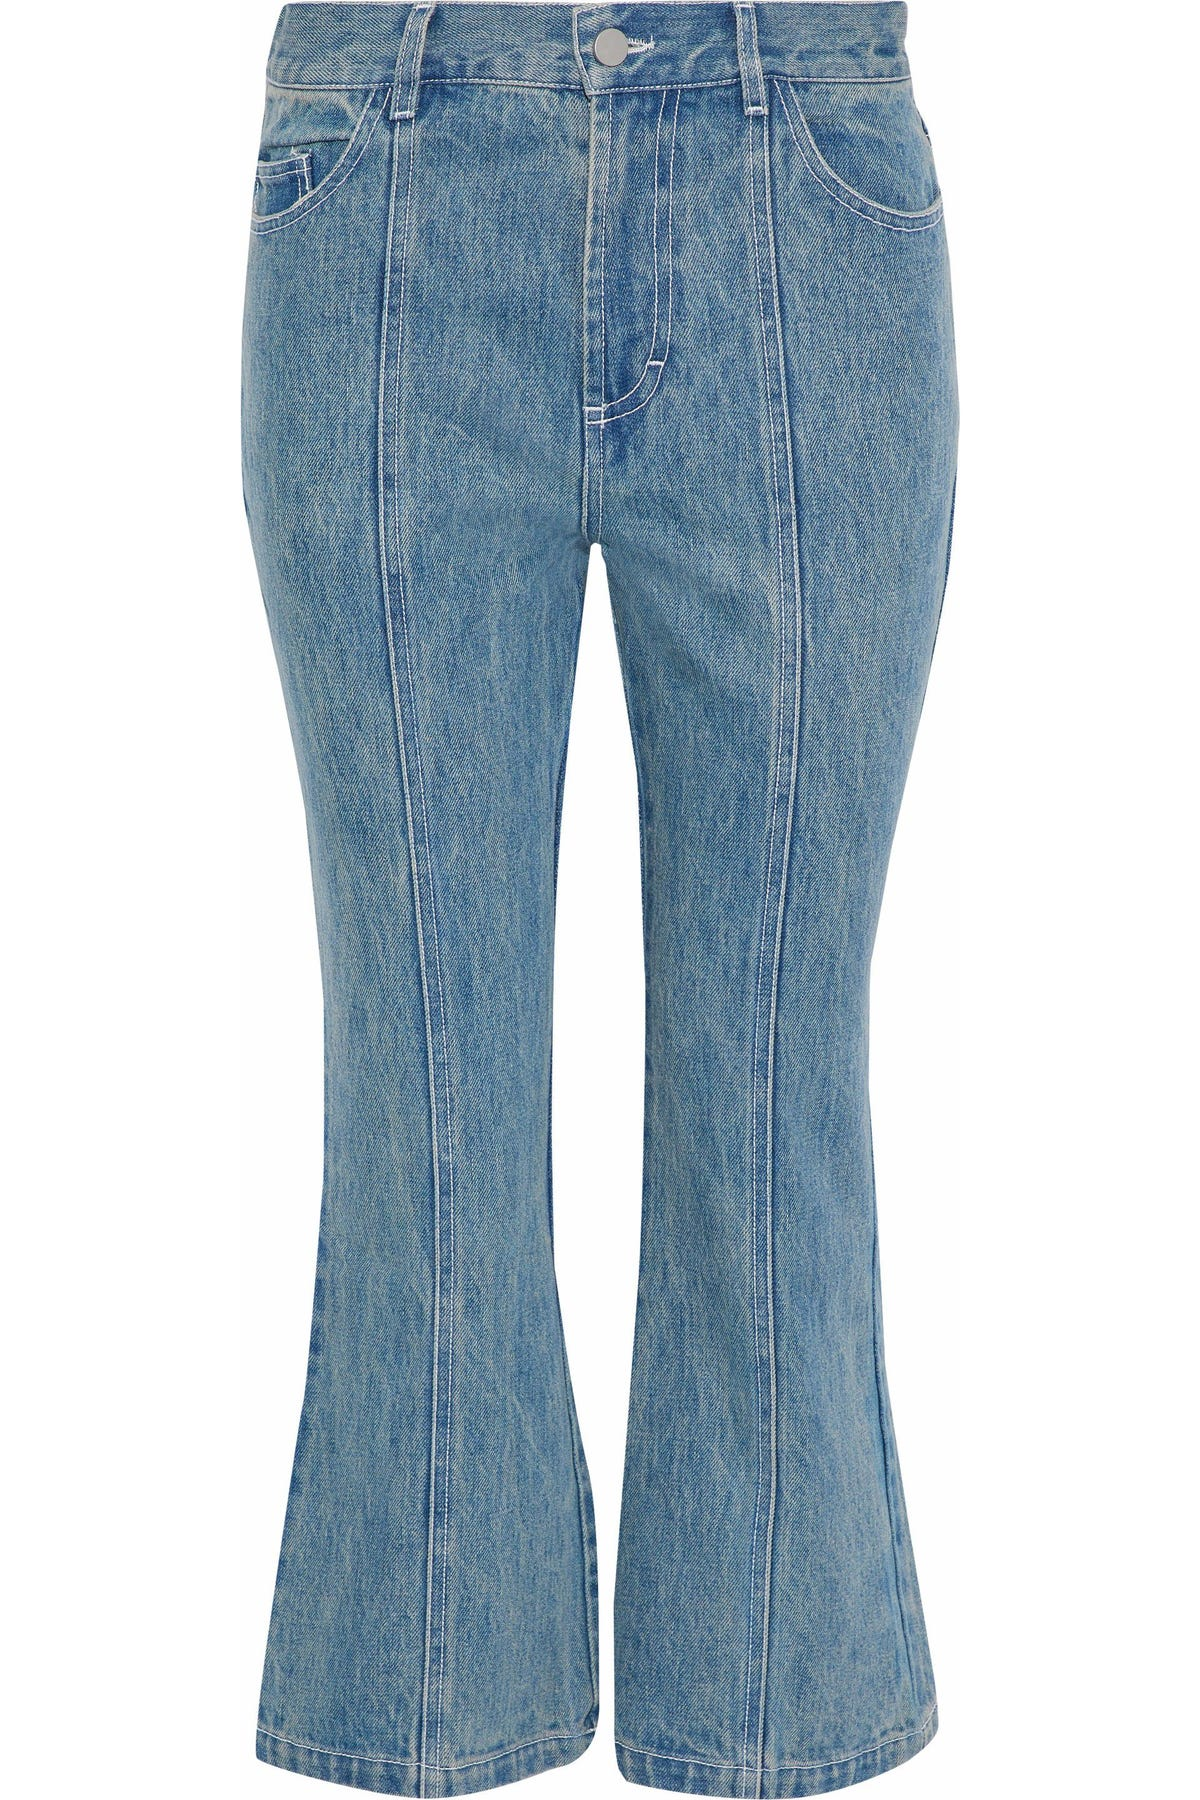 Jeans Denim Styles Waisted High And Women For Best 80wPXknO